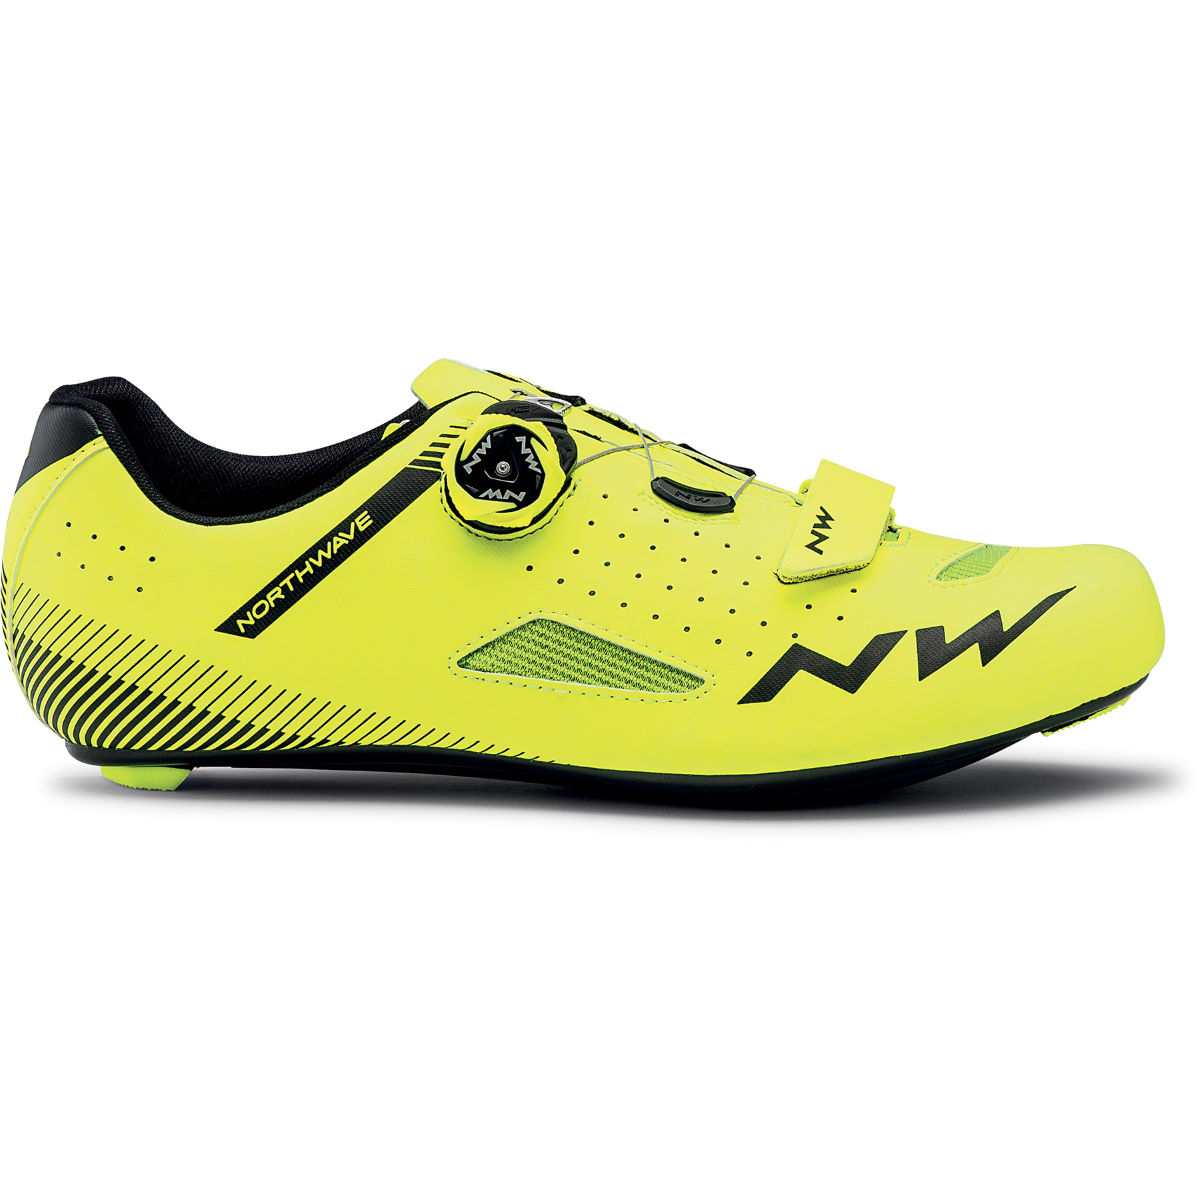 Northwave Northwave Core Plus Road Shoes   Cycling Shoes